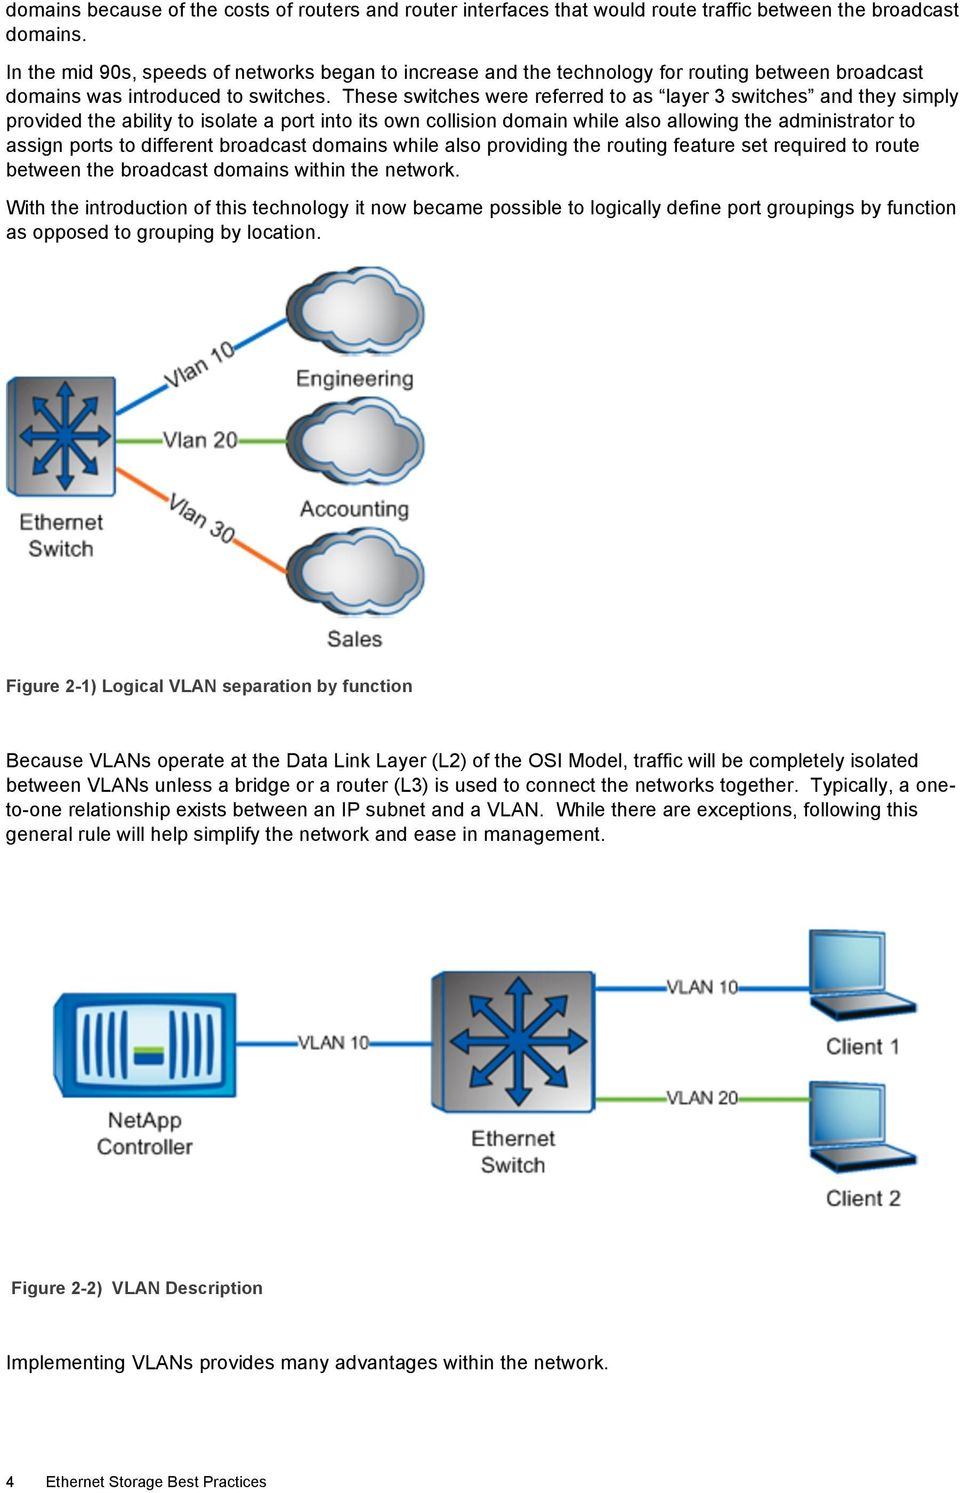 These switches were referred to as layer 3 switches and they simply provided the ability to isolate a port into its own collision domain while also allowing the administrator to assign ports to